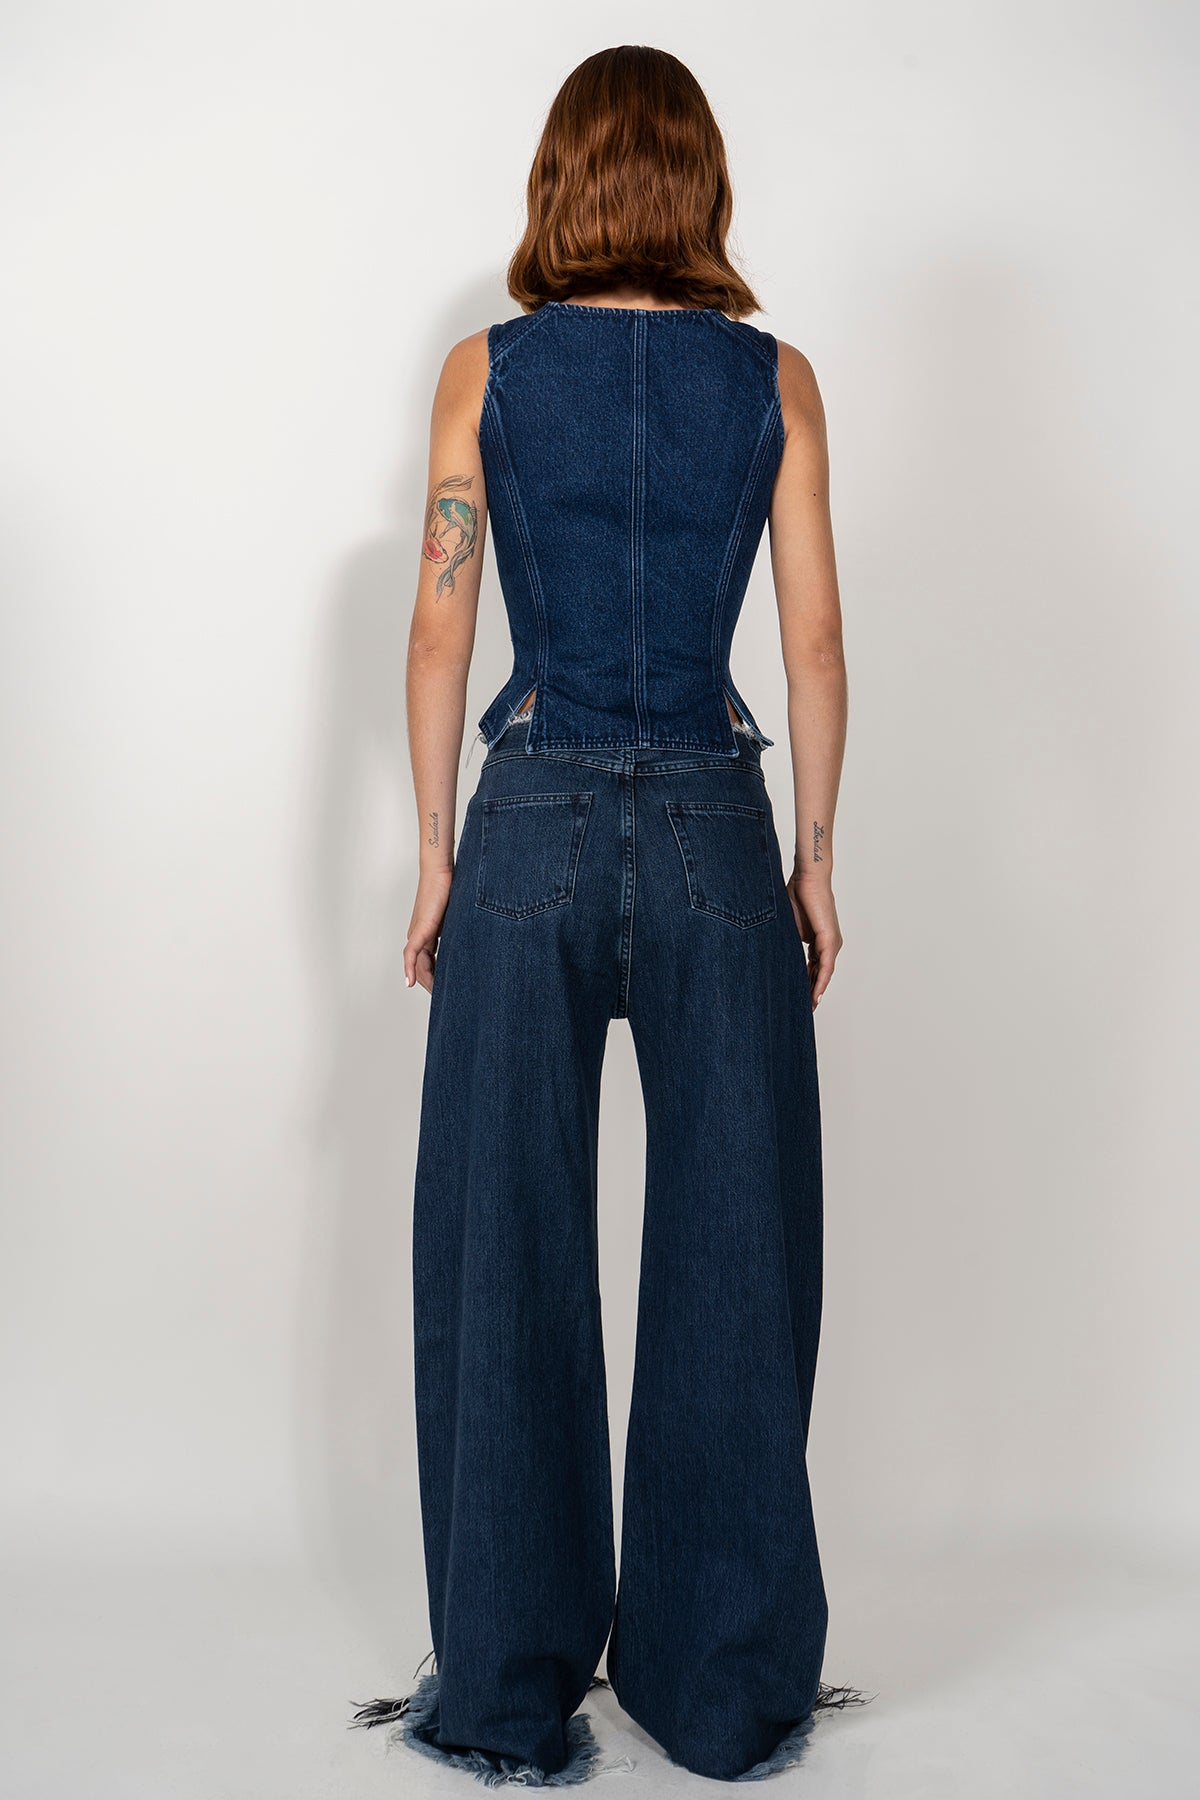 DENIM CORSET IN INDIGO BLUE